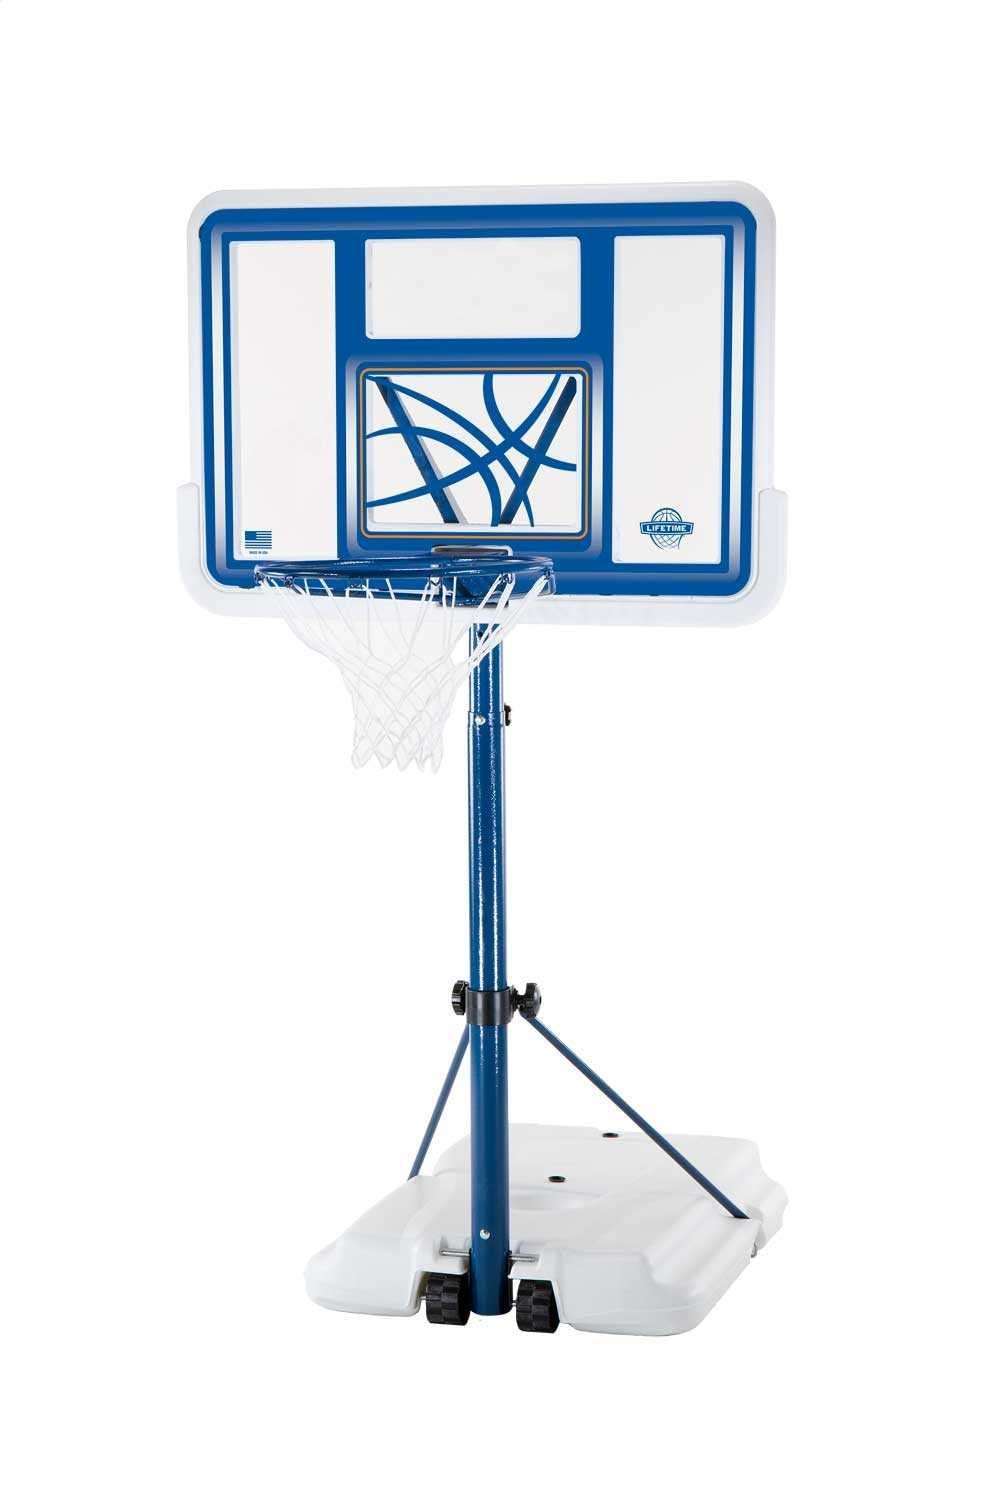 Poolside Basketball Hoop